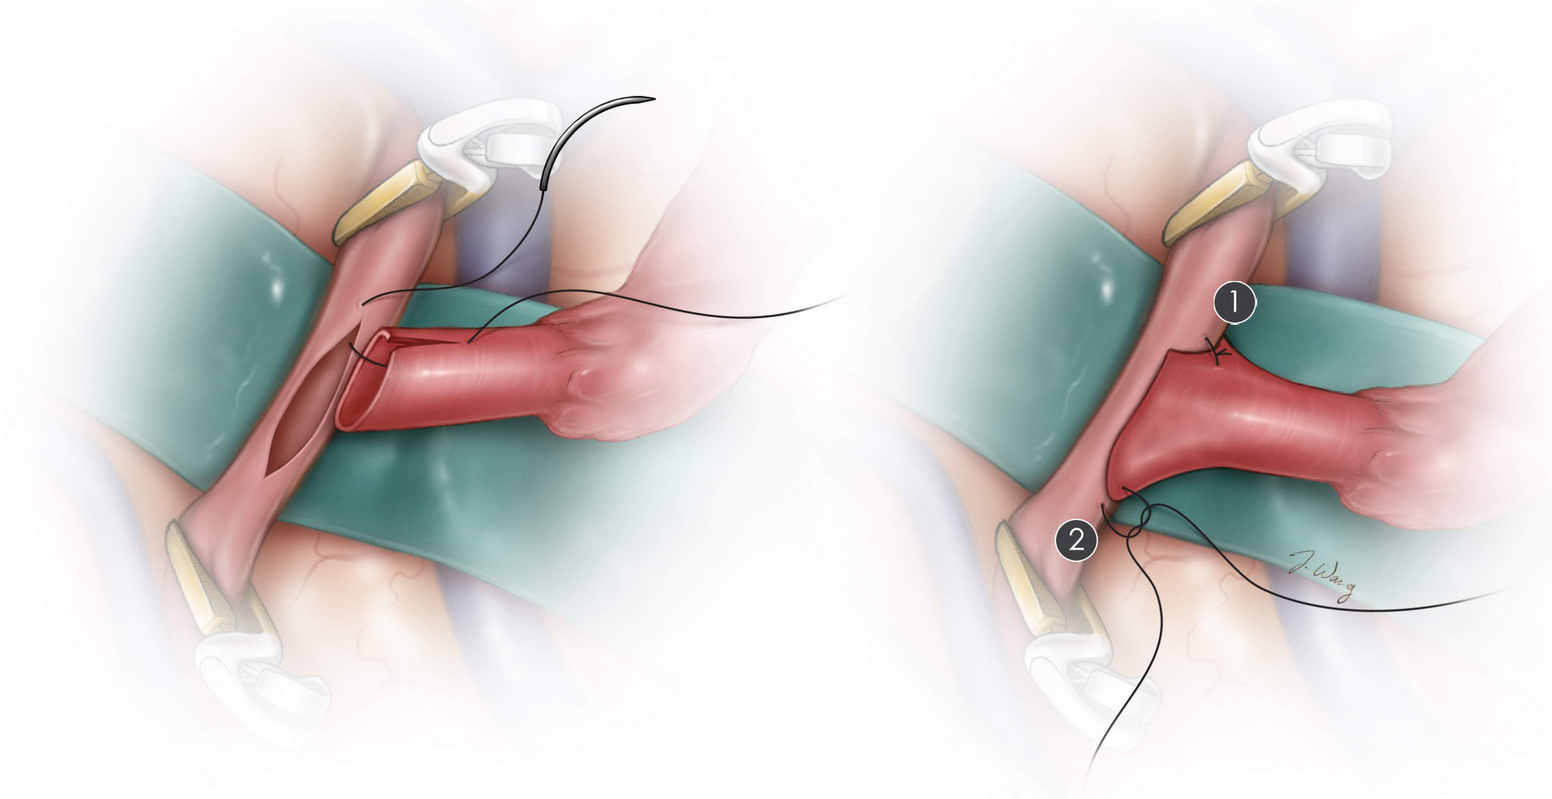 Figure 1. Cerebral bypass surgery involves joining the donor and recipient arteries together with sutures so that blood can bypass the blocked area and flow in adequate amounts to the brain.